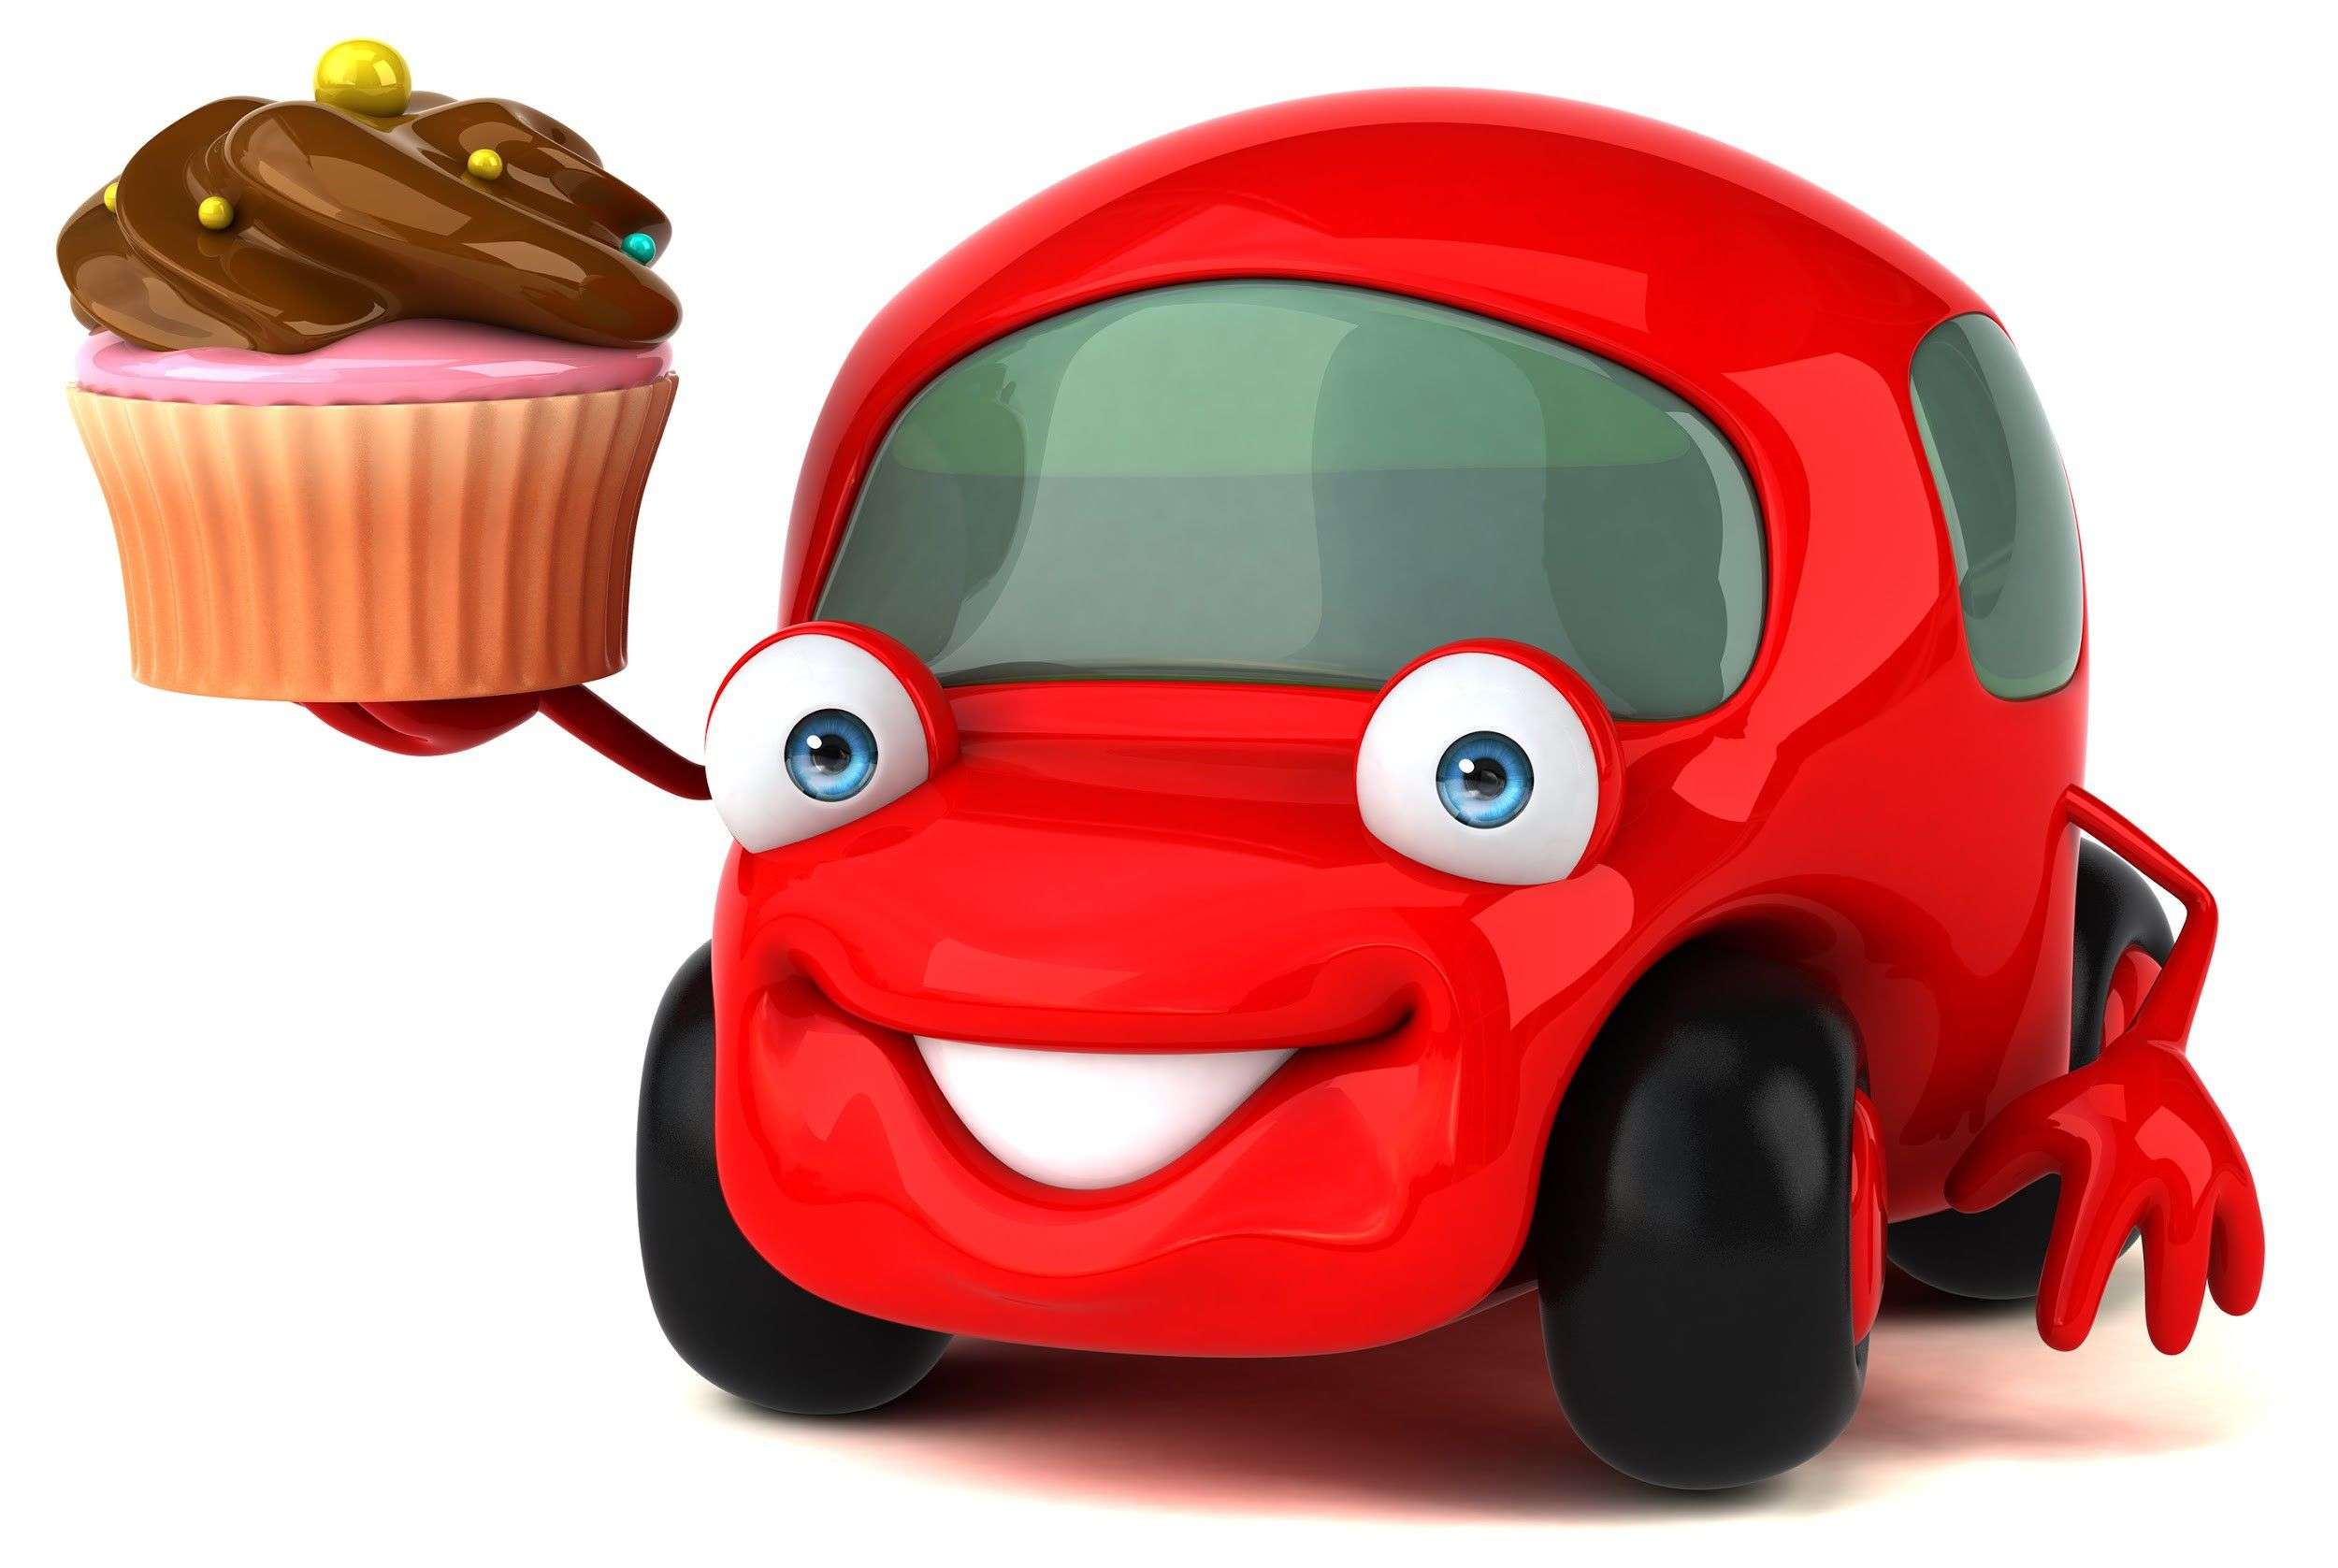 Red animated car holding a cupcake with chocolate icing